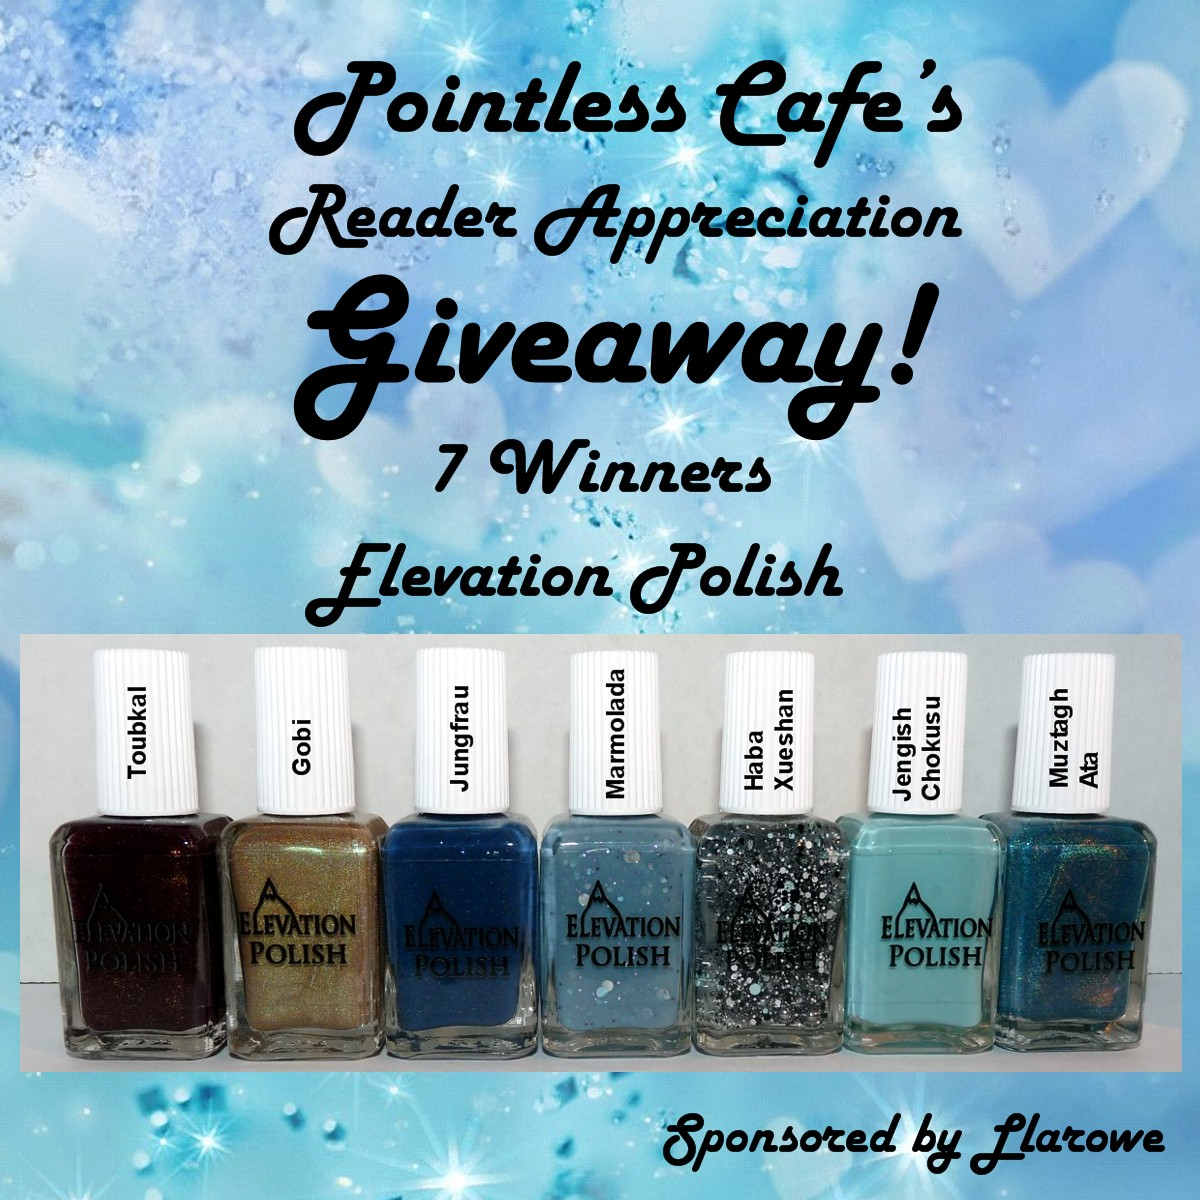 Pointless Cafe's Reader Appreciation Giveaway CONTEST